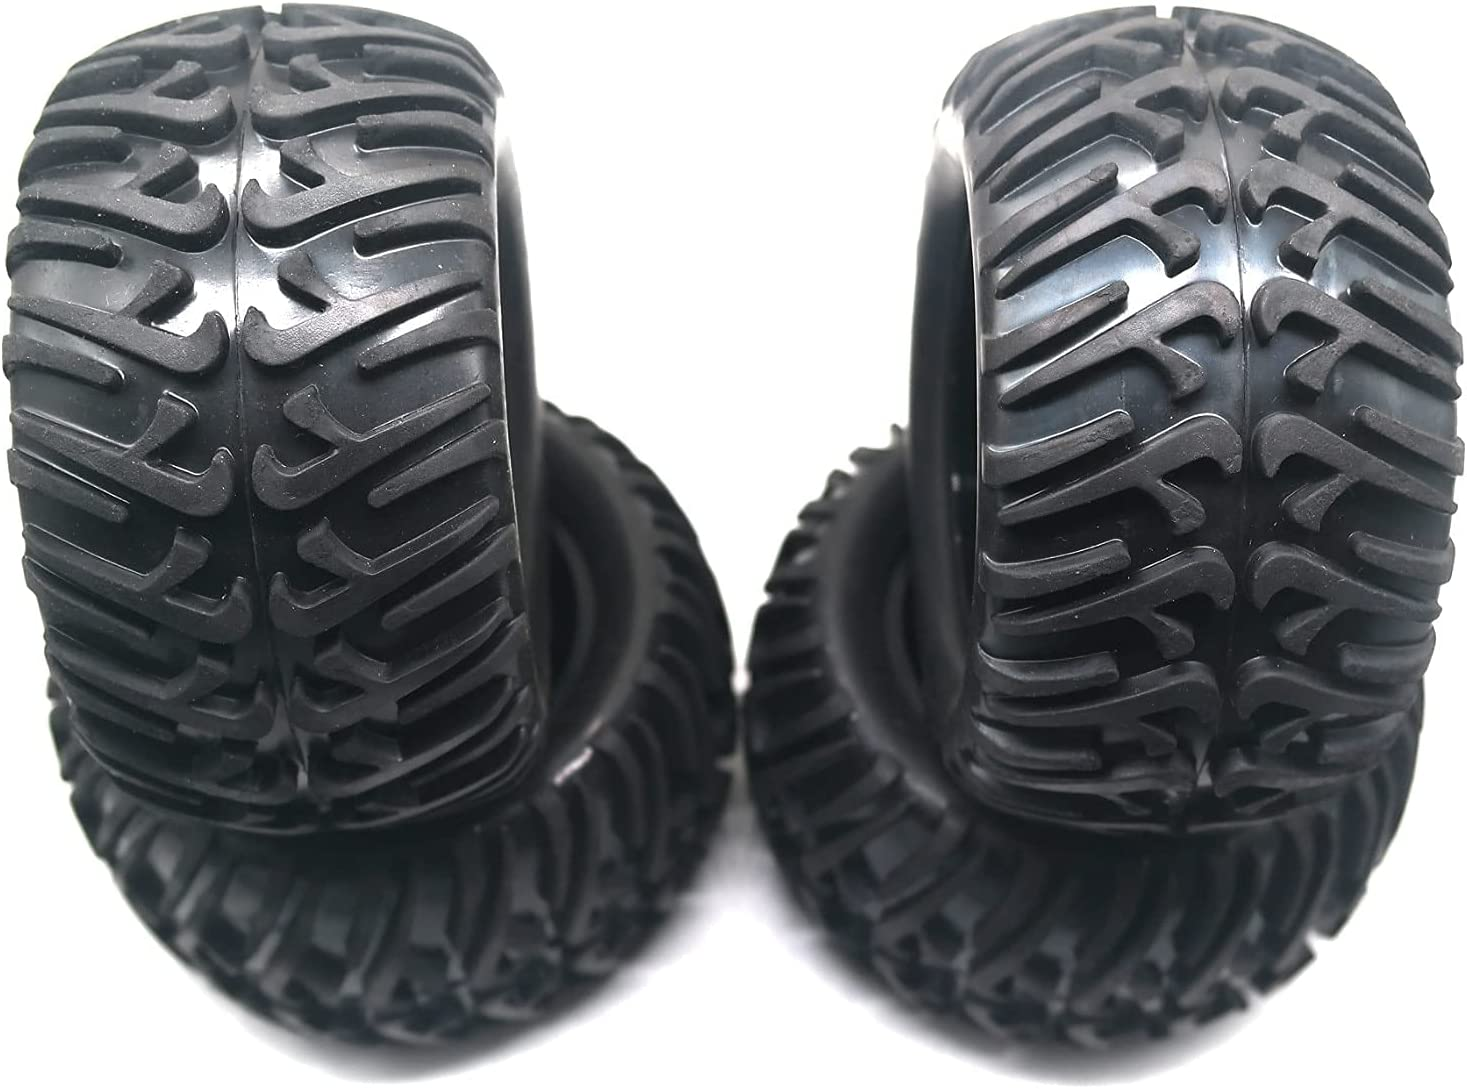 for 125MM Bigfoot tire 1:10 HSP 94111 94188 Fl Now on sale H9801 Ranking TOP8 Hongnuo